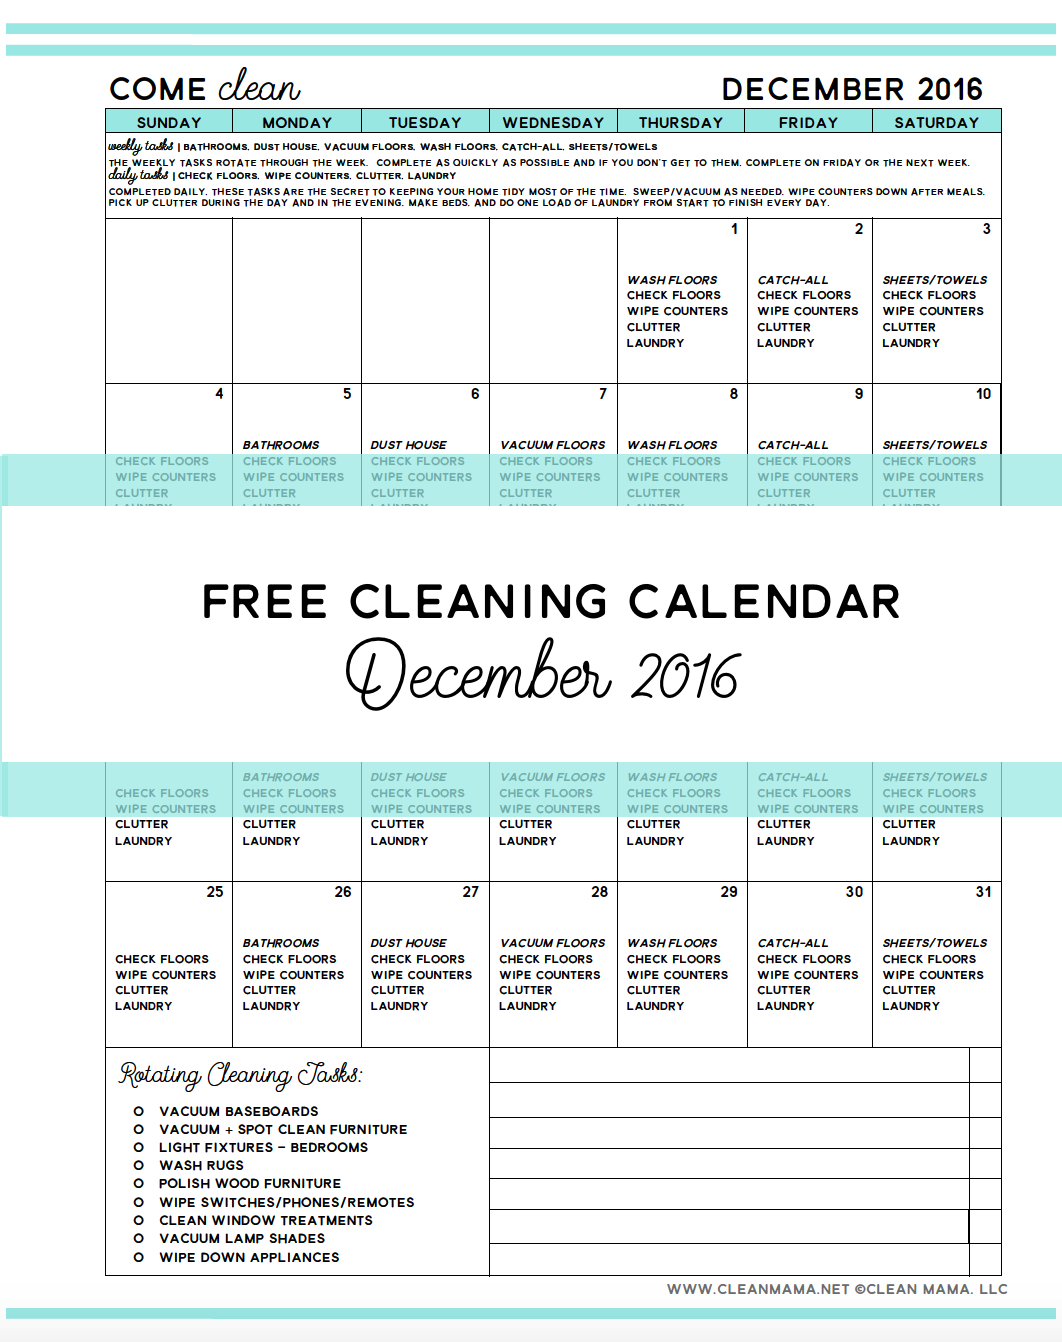 Come Clean – FREE Cleaning Calendar for December 2016